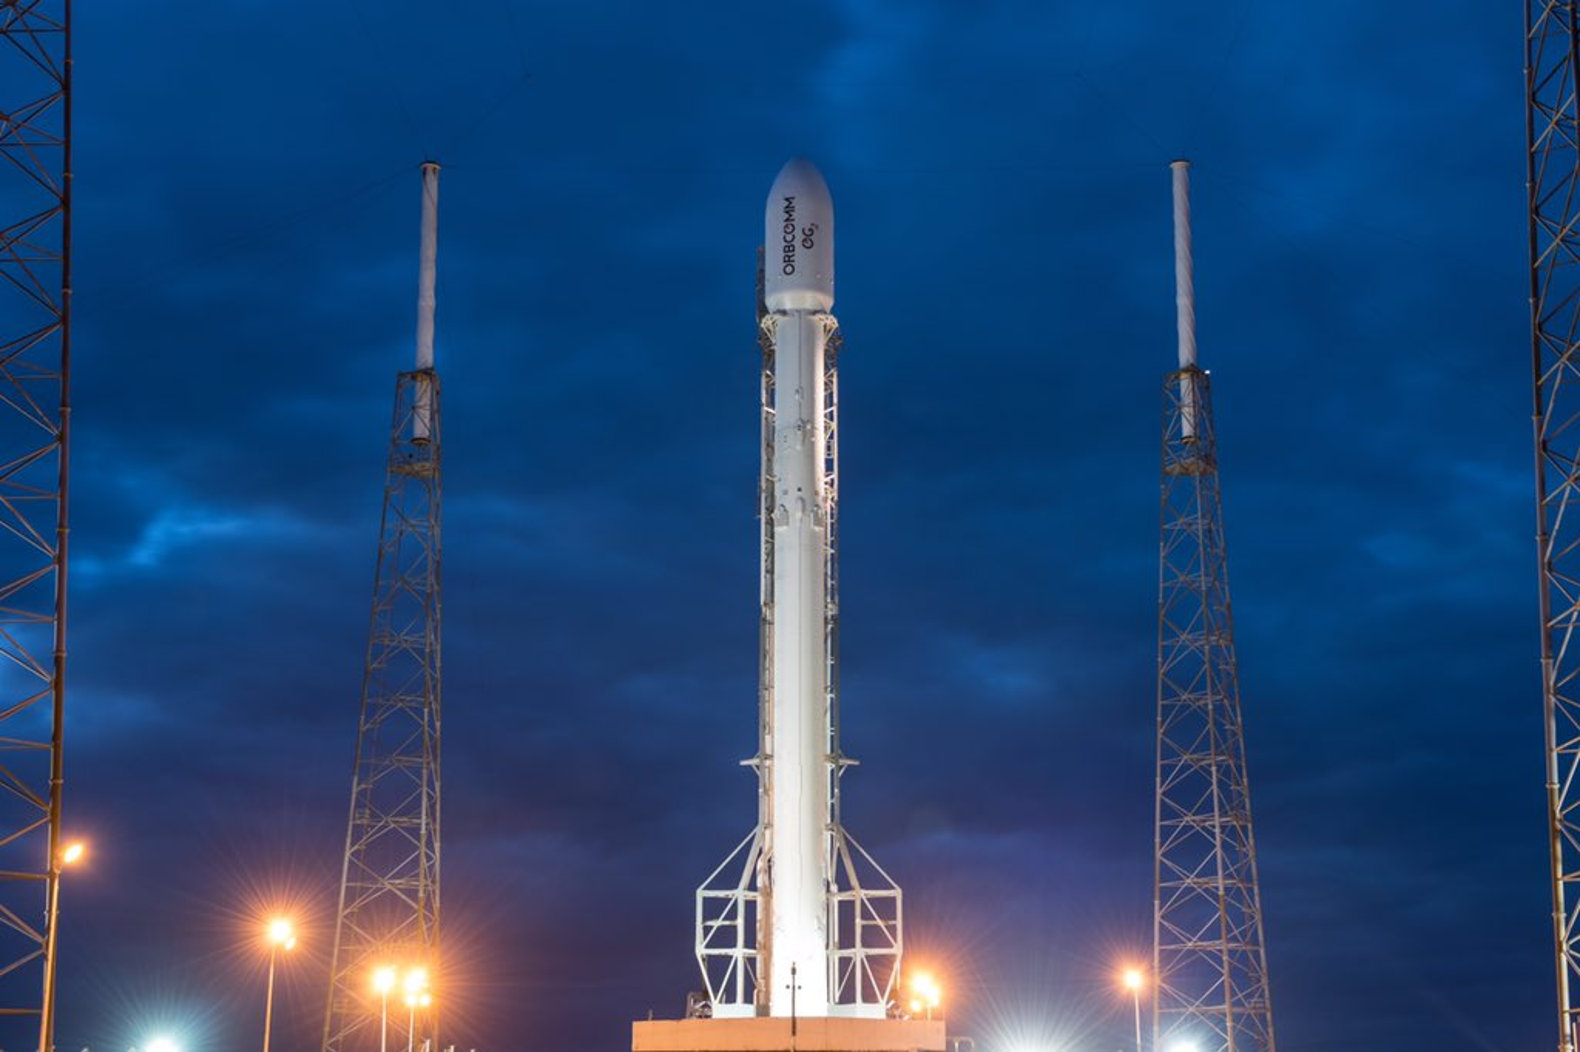 last night spacex successfully launched and landed its falcon 9 rocket at cape canaveral florida this was the first rocket launch for spacex since the